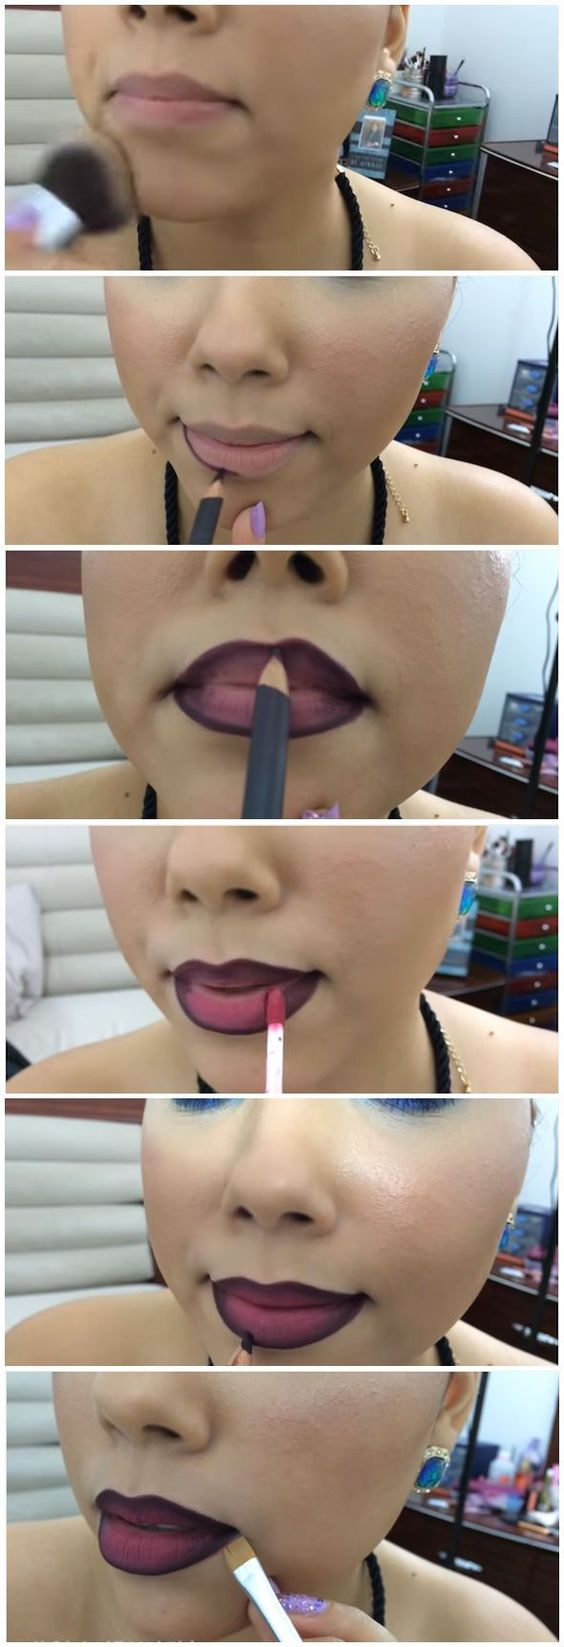 How To Do Ombre Lip | How To Apply Lipstick And DIY Lipstick Tricks by Makeup Tutorials http://makeuptutorials.com/how-to-do-ombre-lip/: